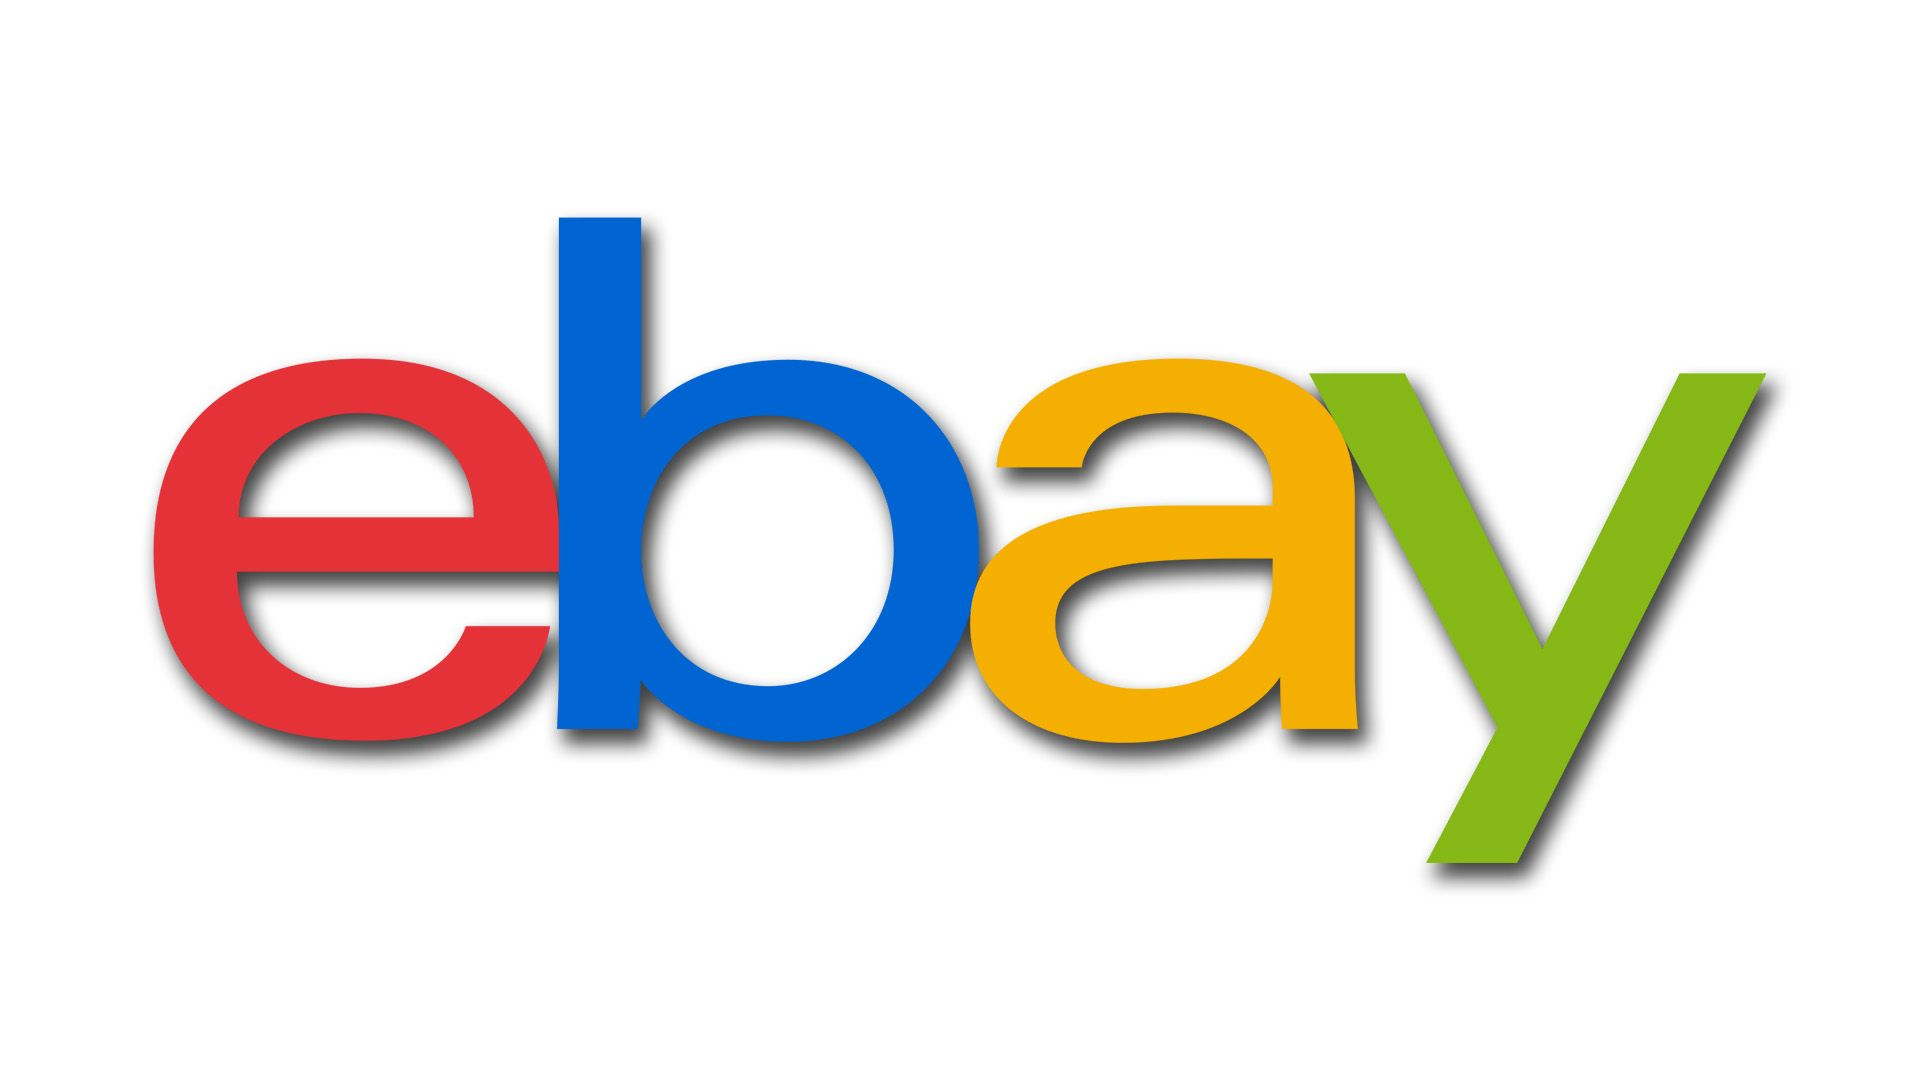 De 0 à 36,6 milliards de dollars (eBay) #GrowthHacking #WEbMarketing #FormationGrowthHacking #CentreDeFormationFrance #TunnelAARRR #AARRR #SocialMedia #CommunityManagement #SEO #eBay #acquisition